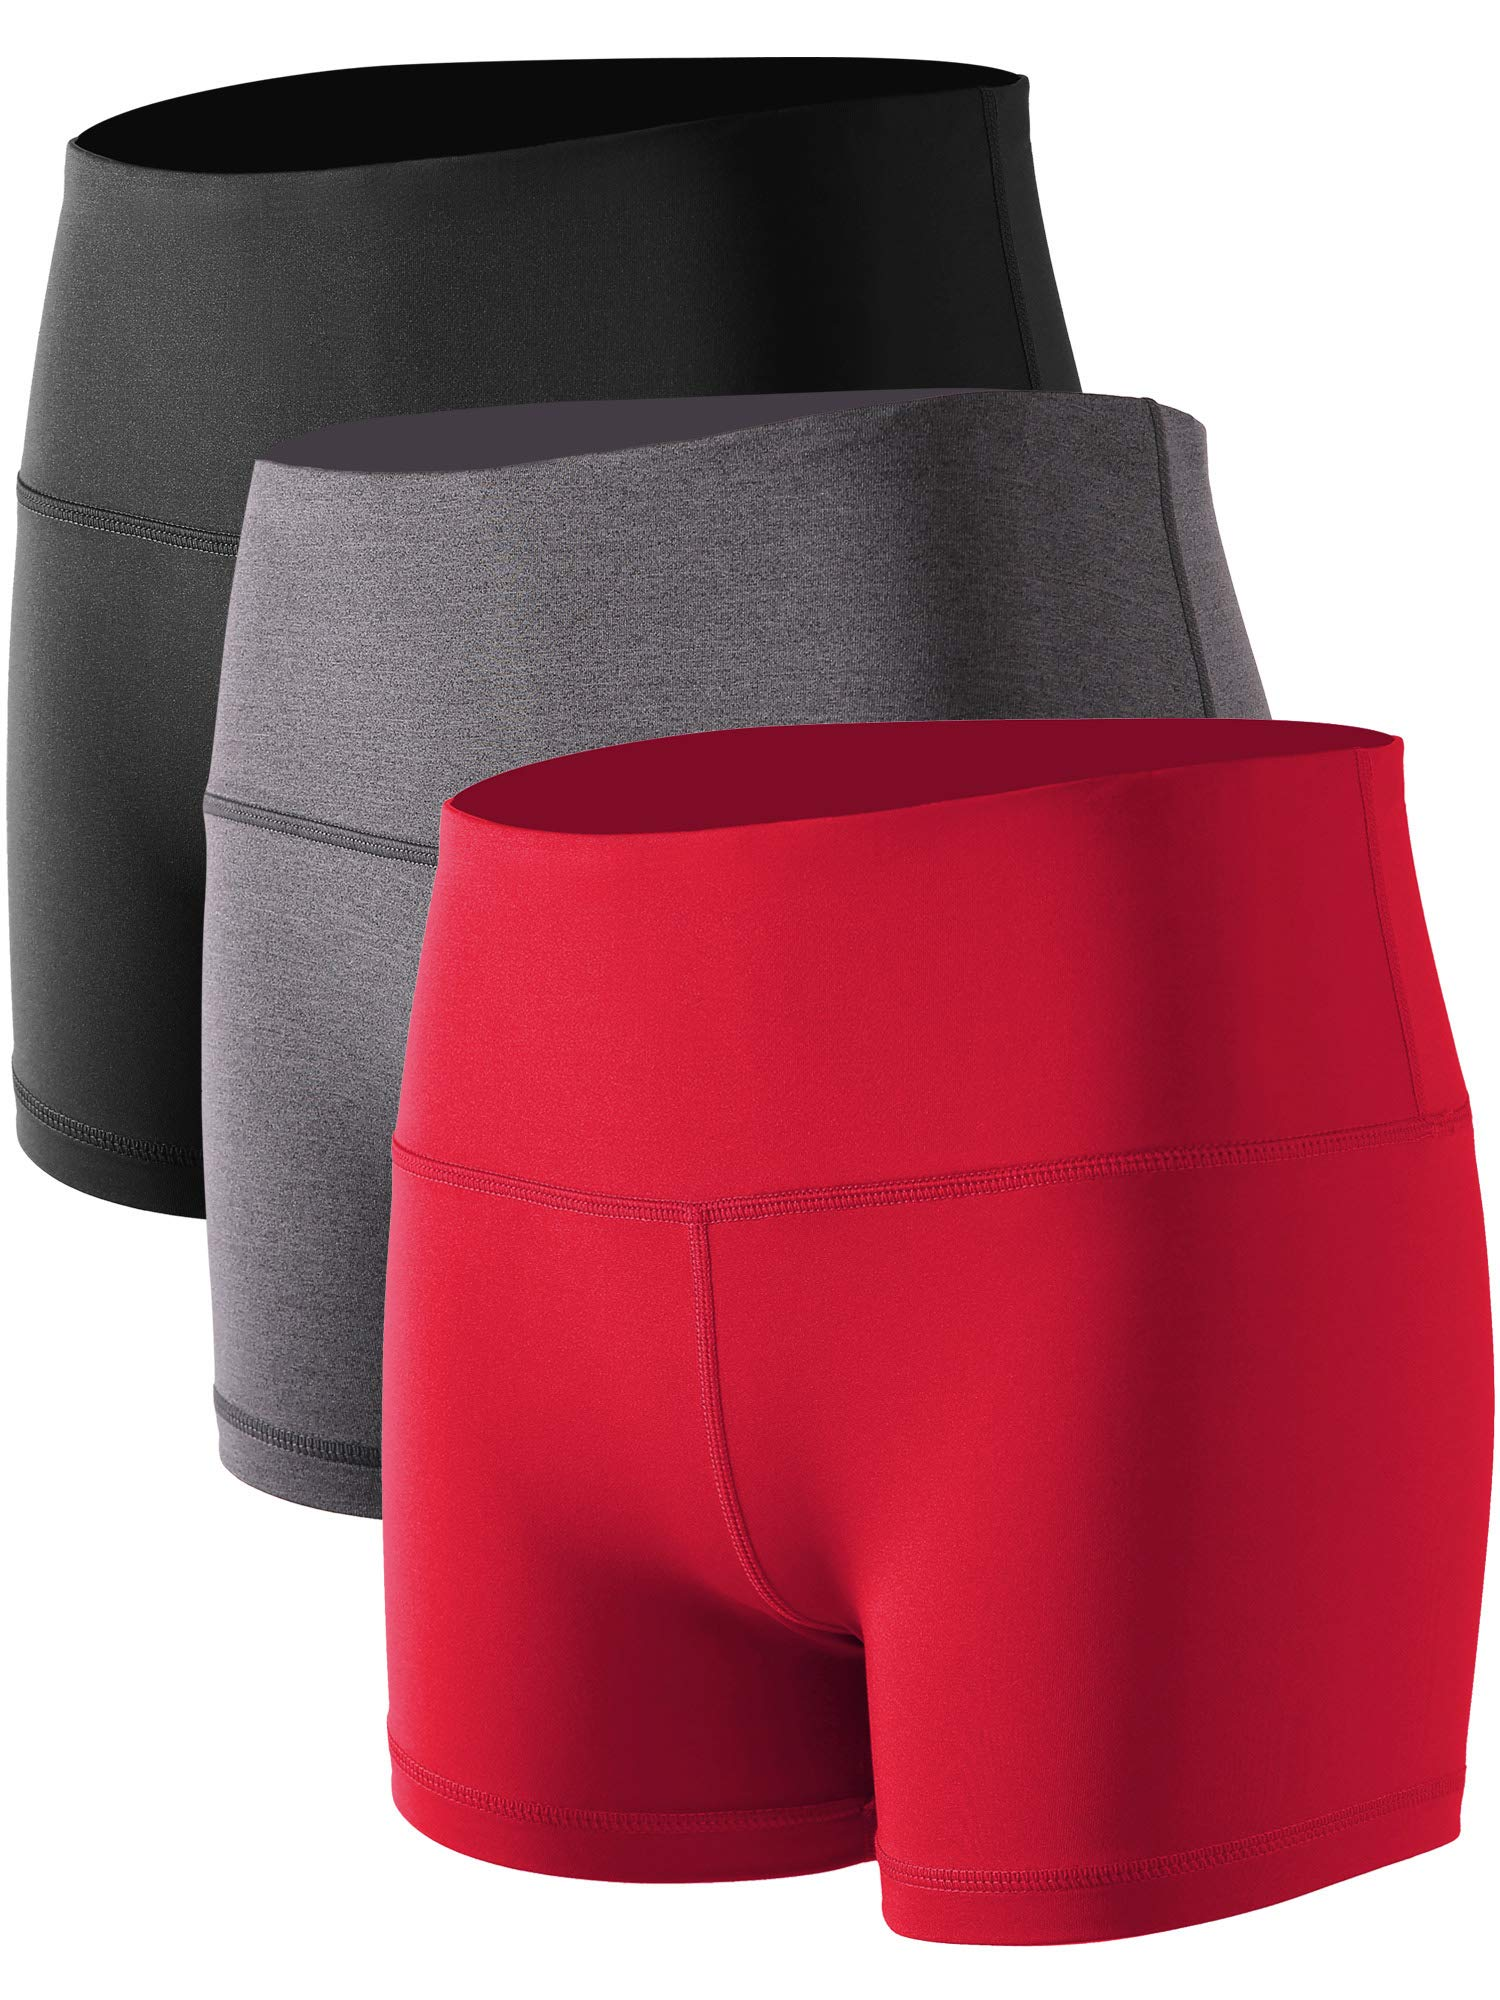 Cadmus Women's Stretch Fitness Running Shorts with Pocket,3 Pack,05,Black,Grey,Red,Small by Cadmus